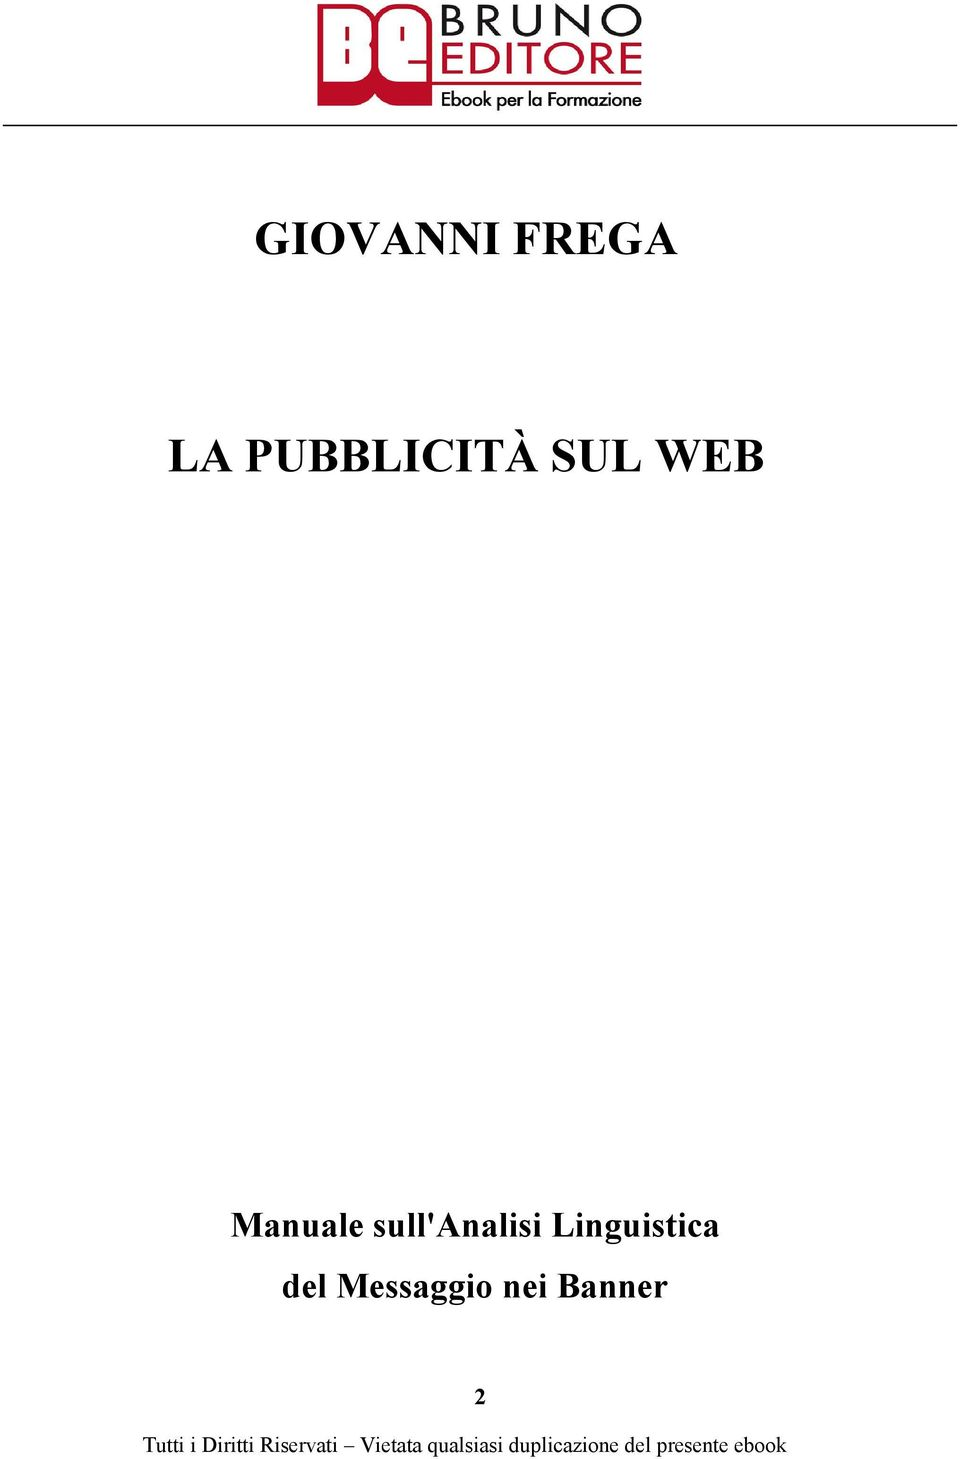 Manuale sull'analisi